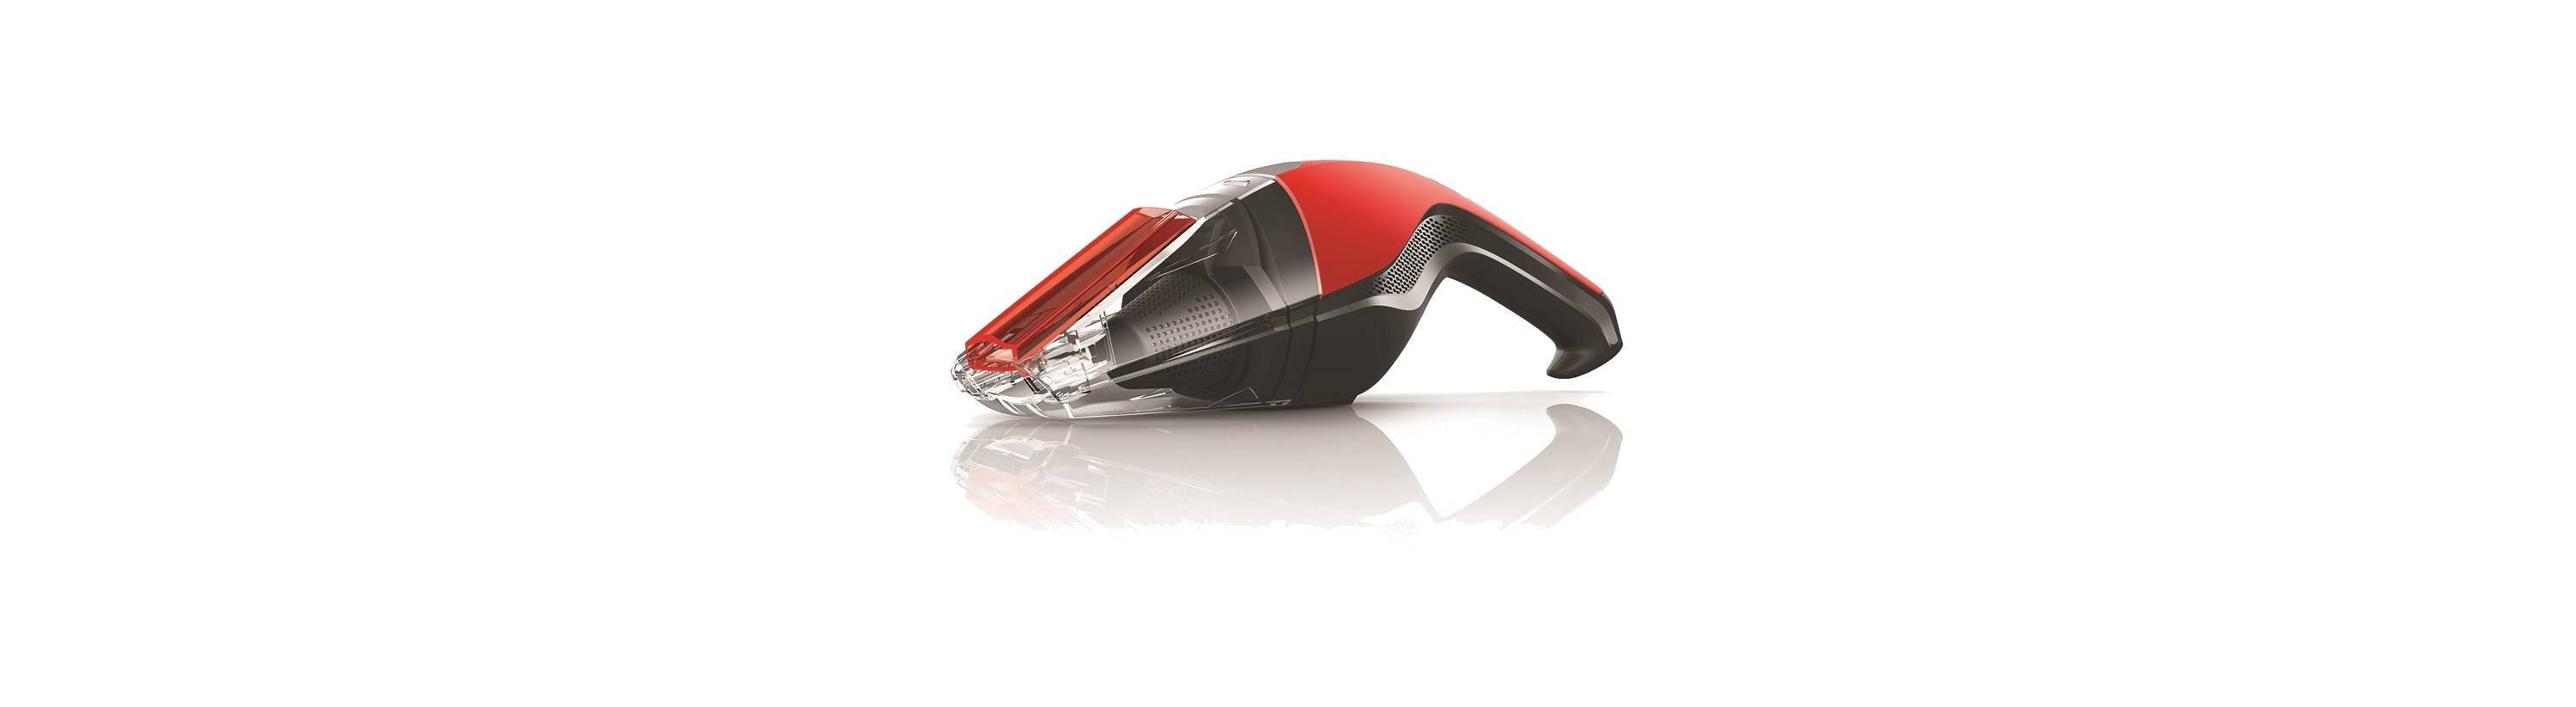 Dirt Devil® Quick Flip® Cordless Hand Vacuum - Red